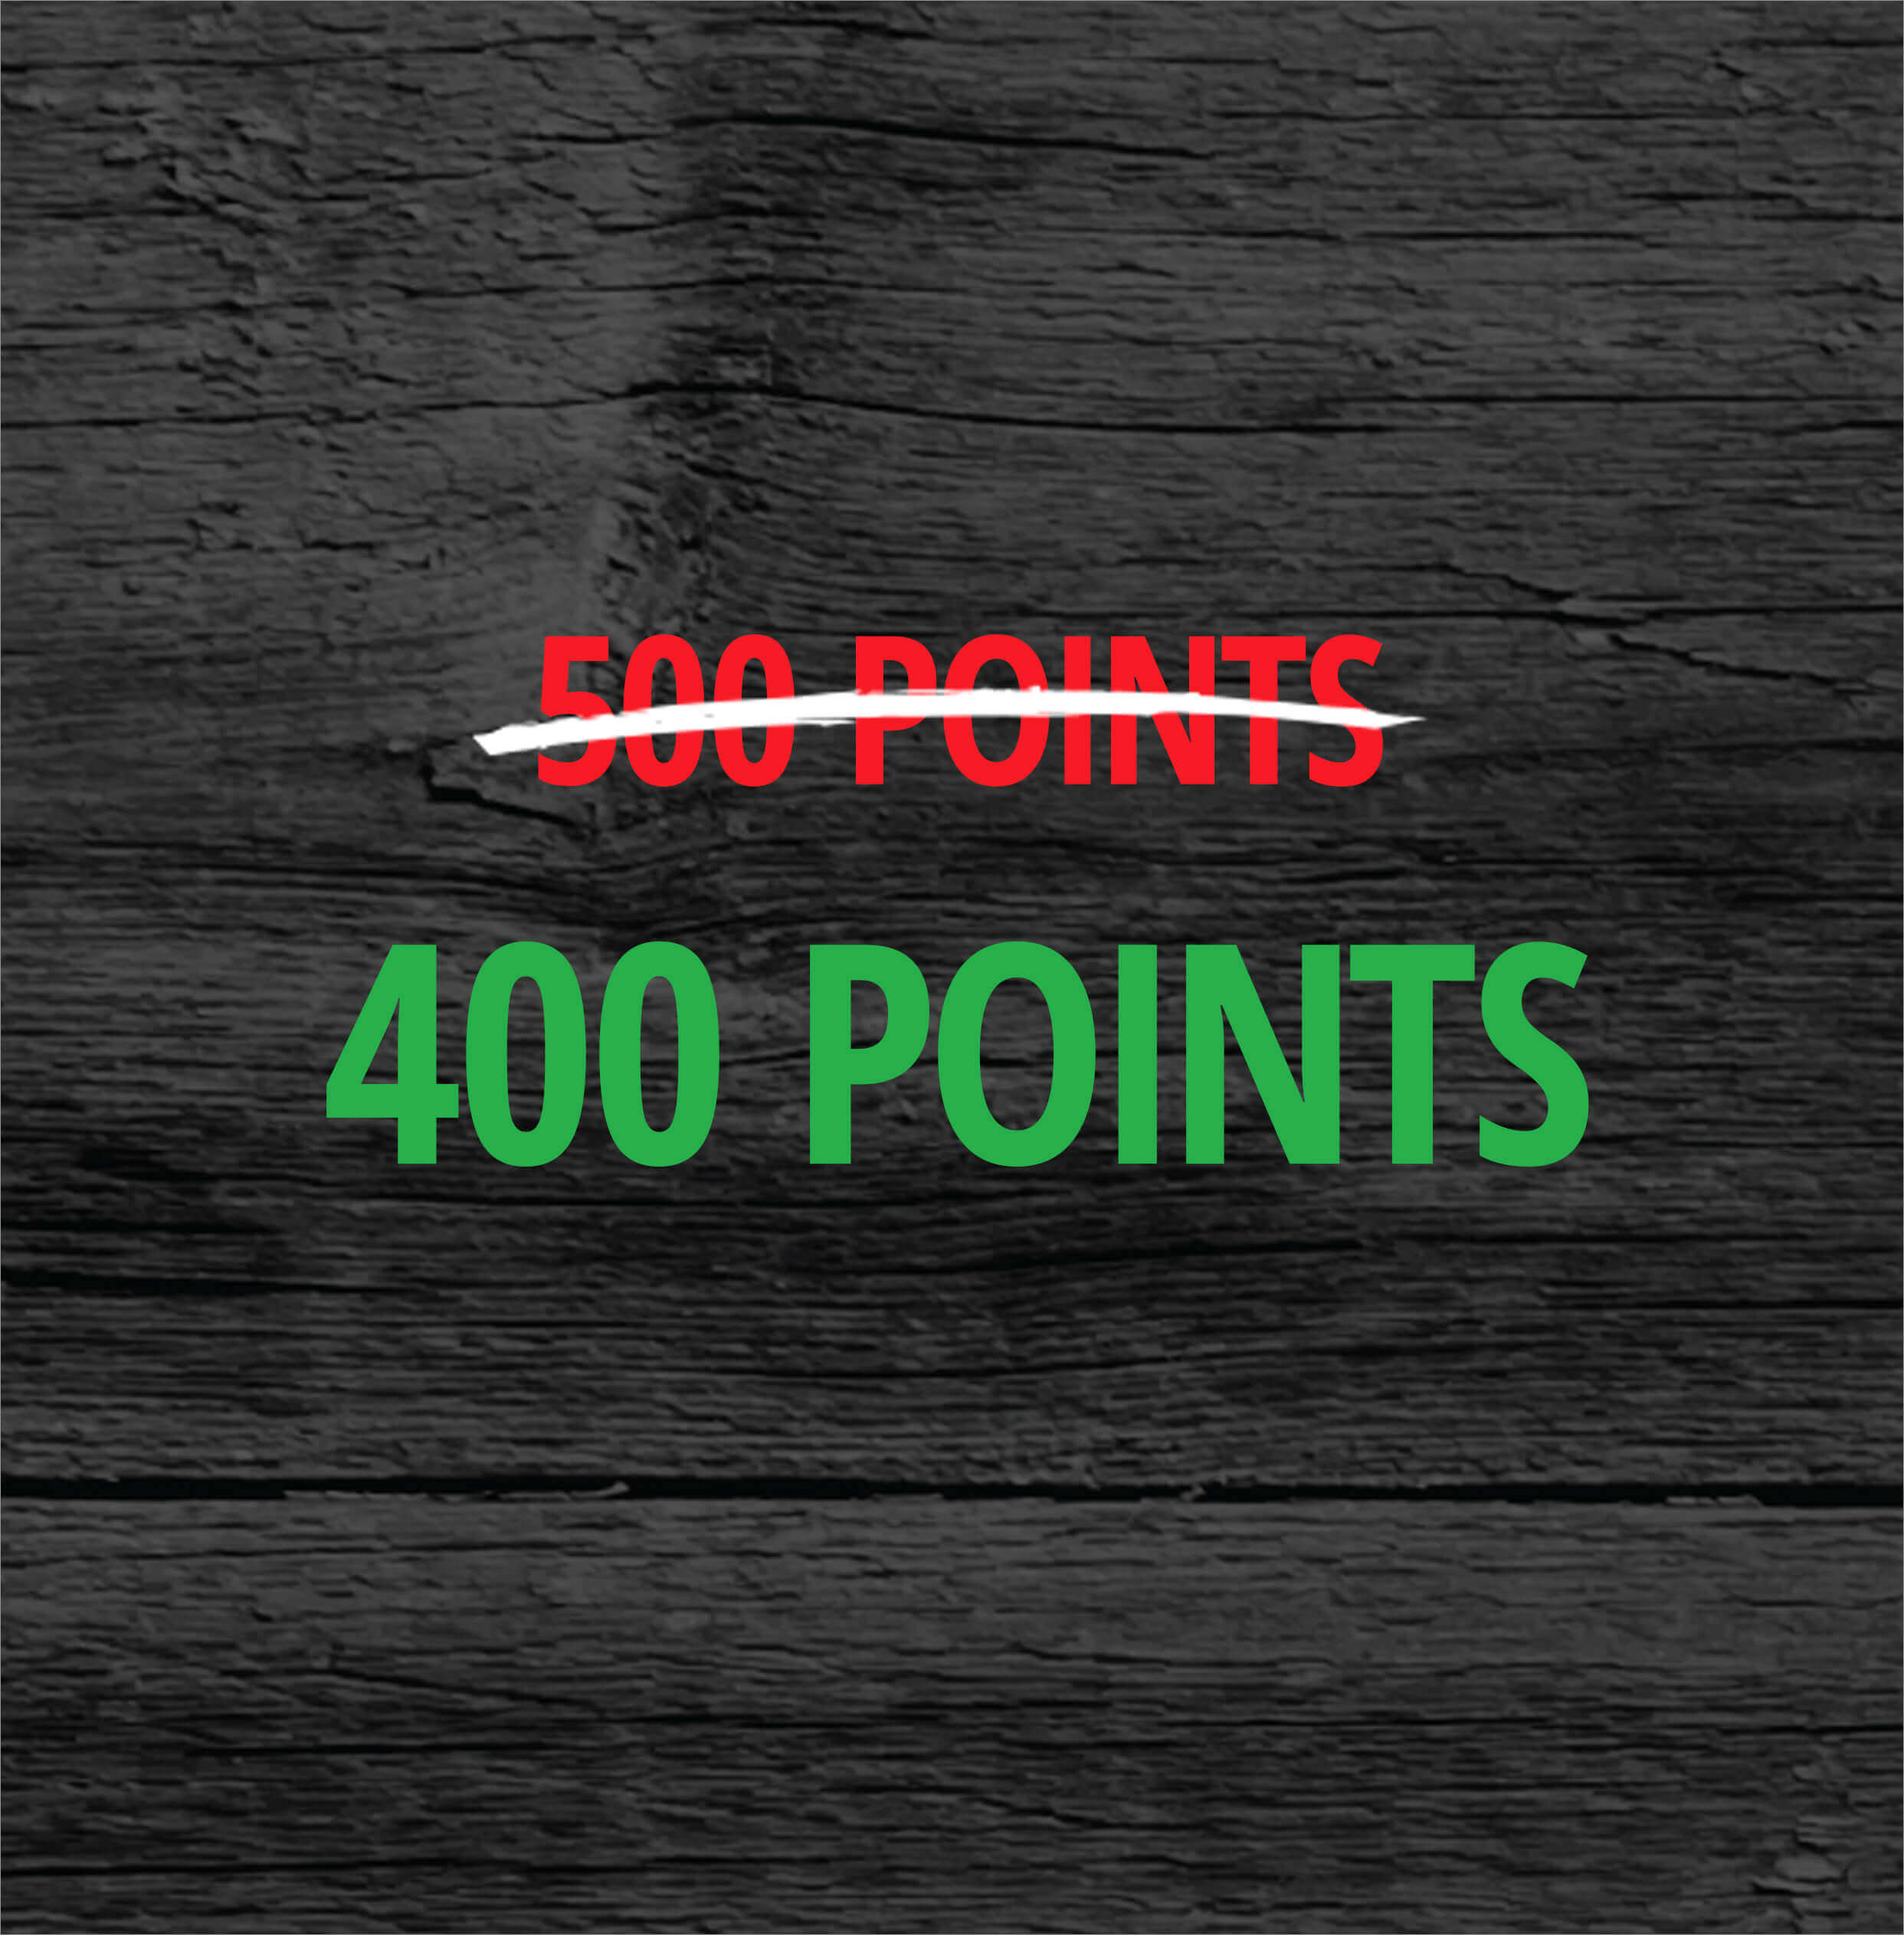 500 Points On Sale For 400 Points